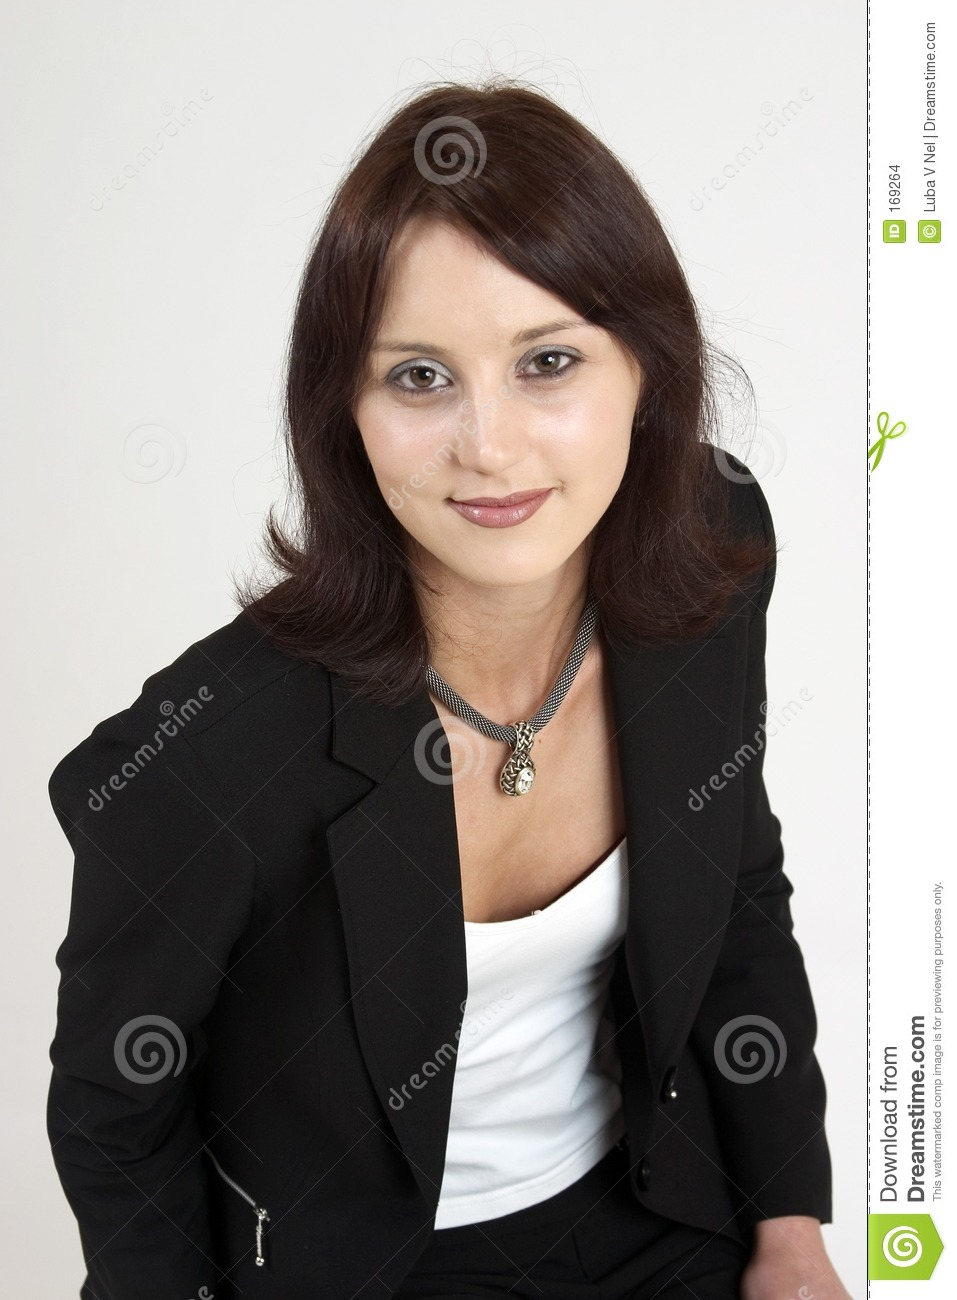 Professional woman portrait